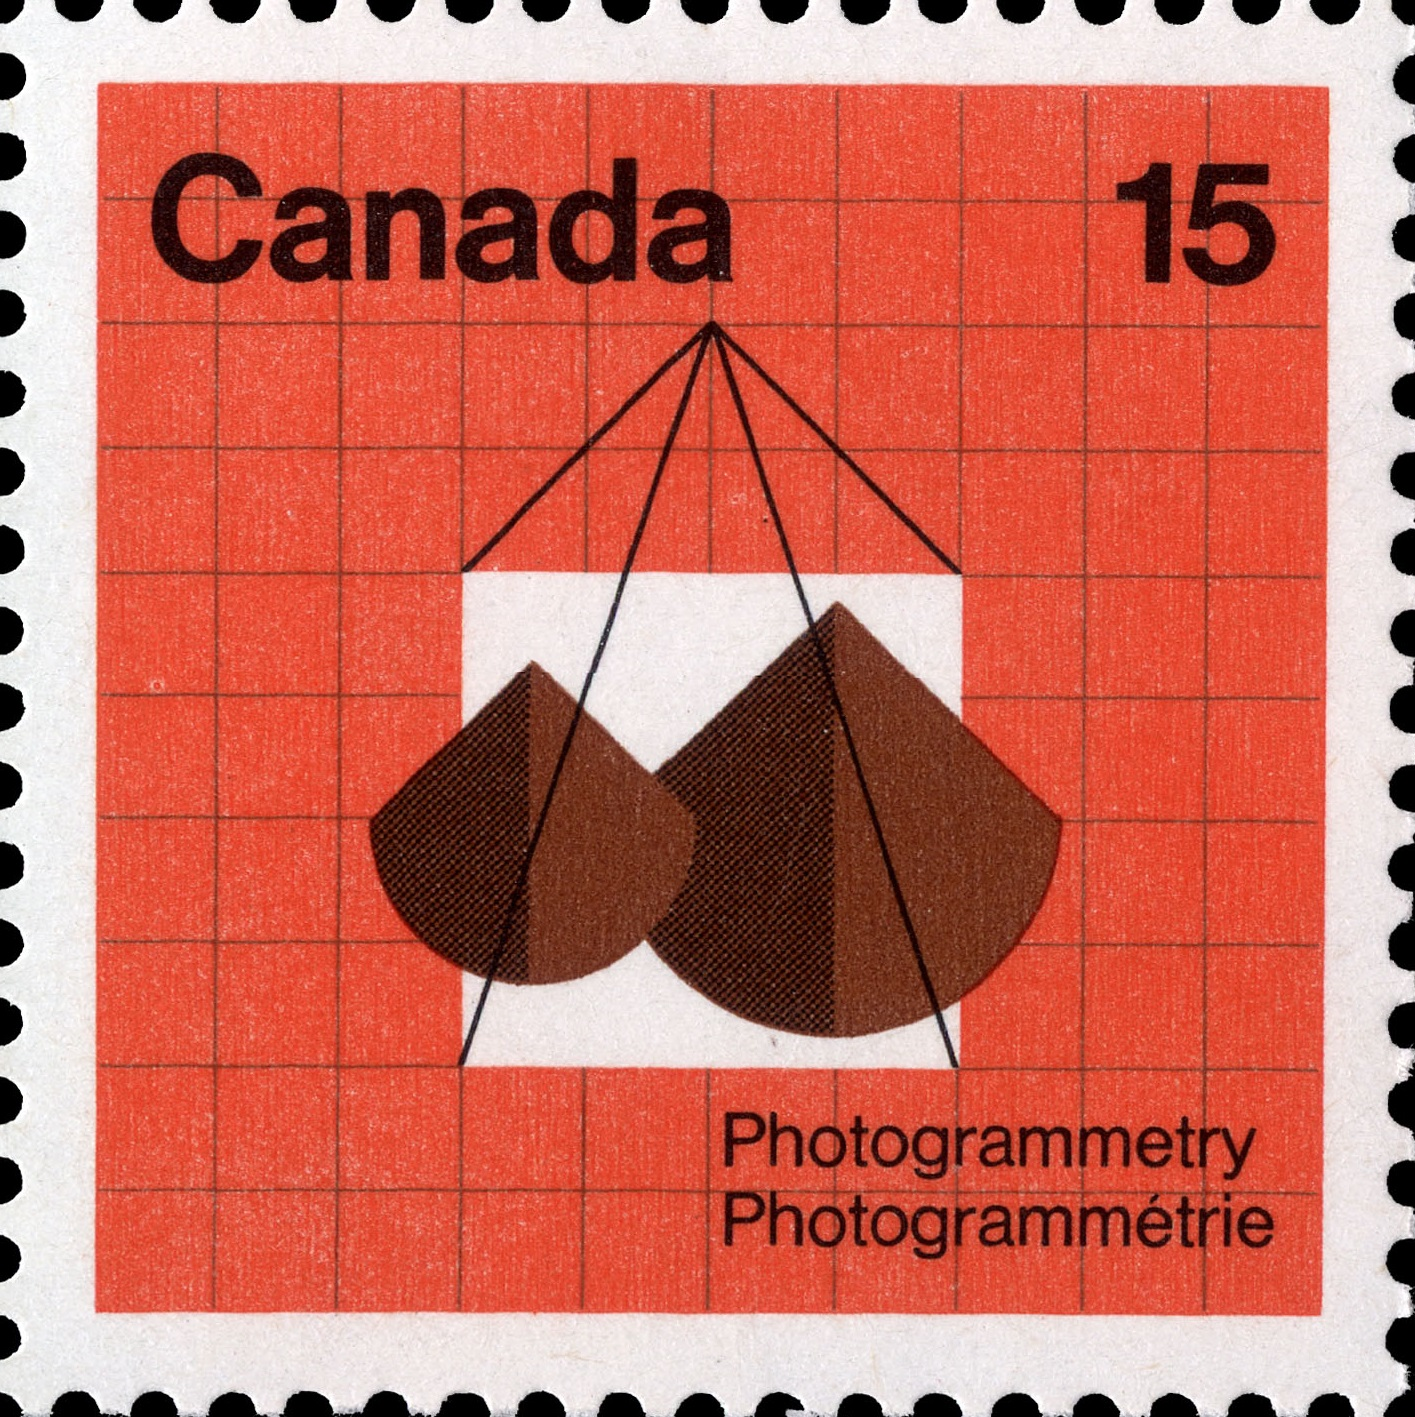 Photogrammetry Canada Postage Stamp